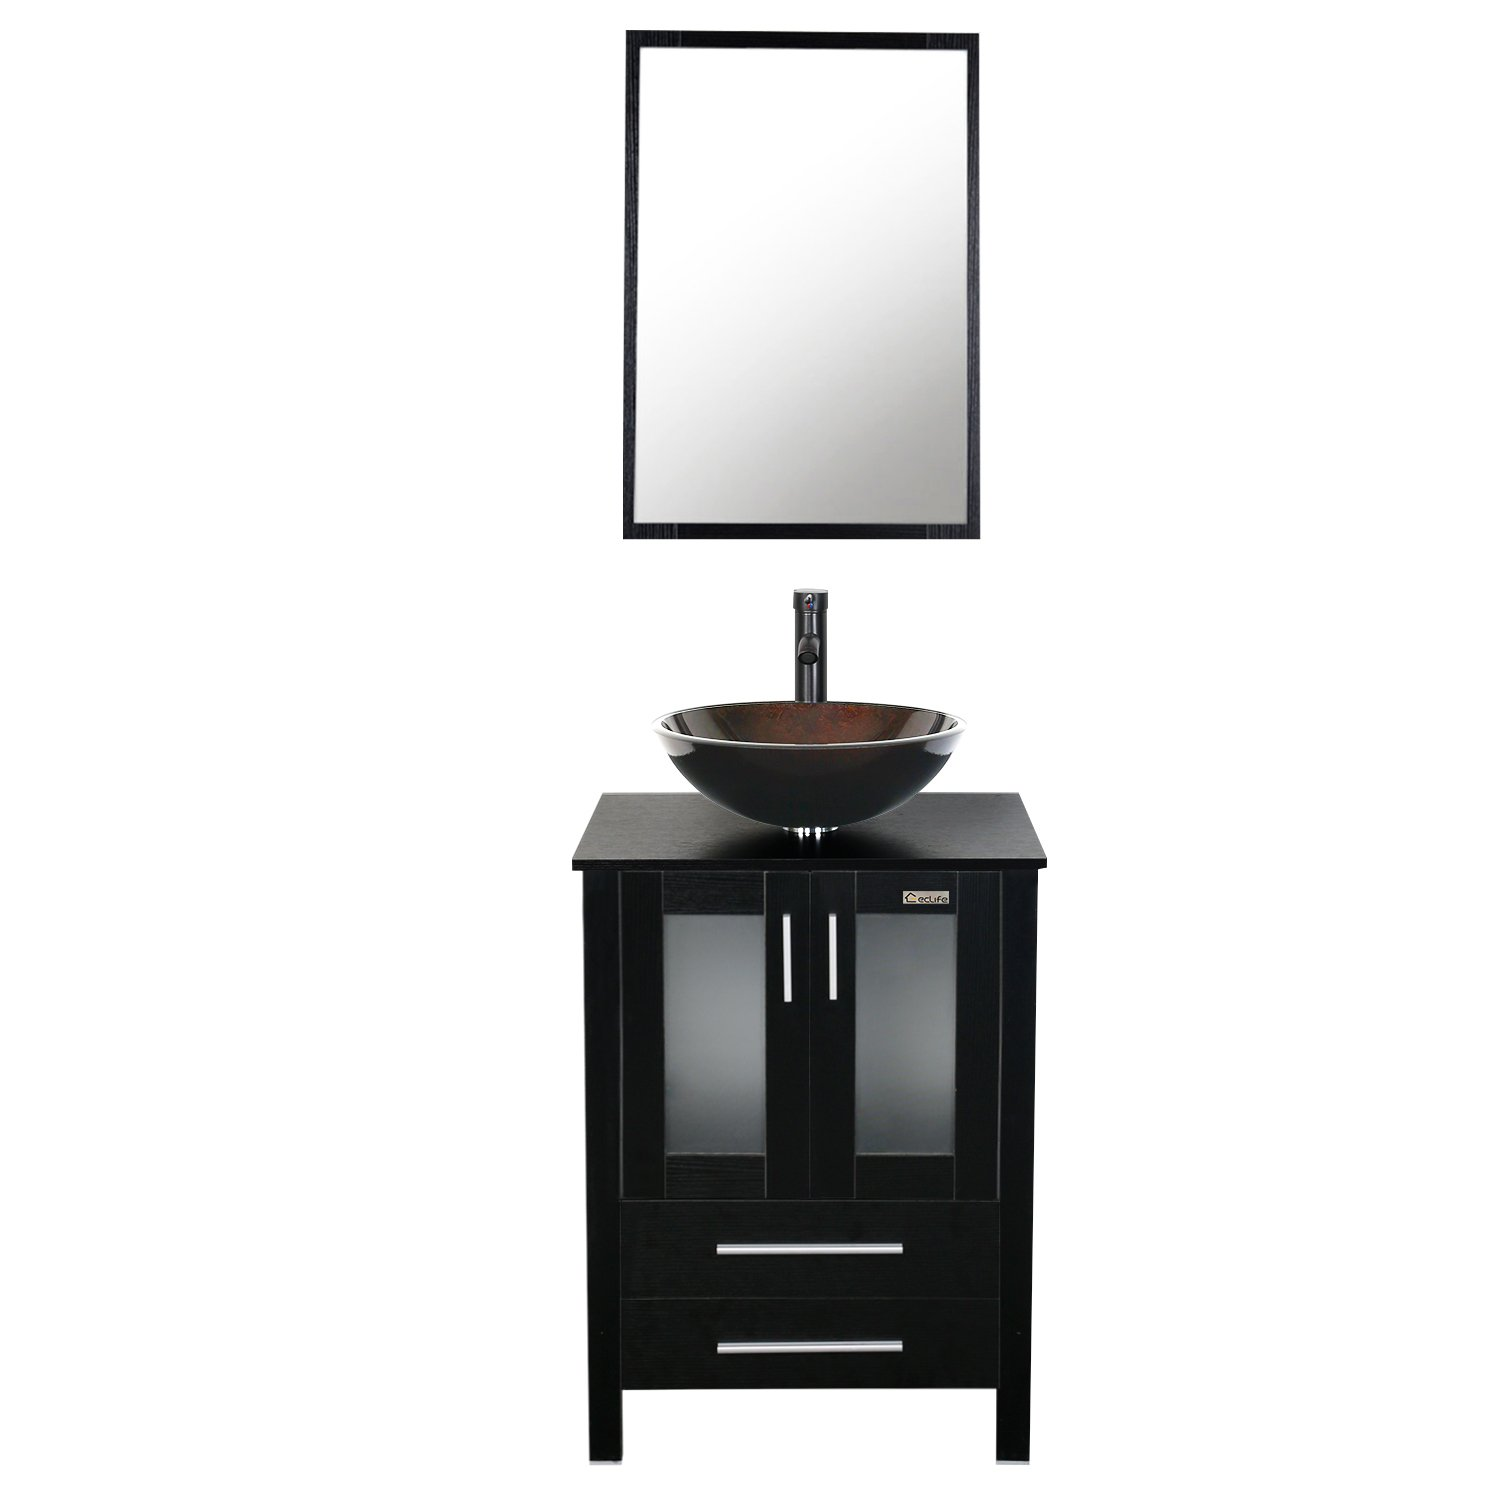 ottery decorating mirror bathroom tri barn vanity splendid ideas barns park pottery home mirrored and fold design